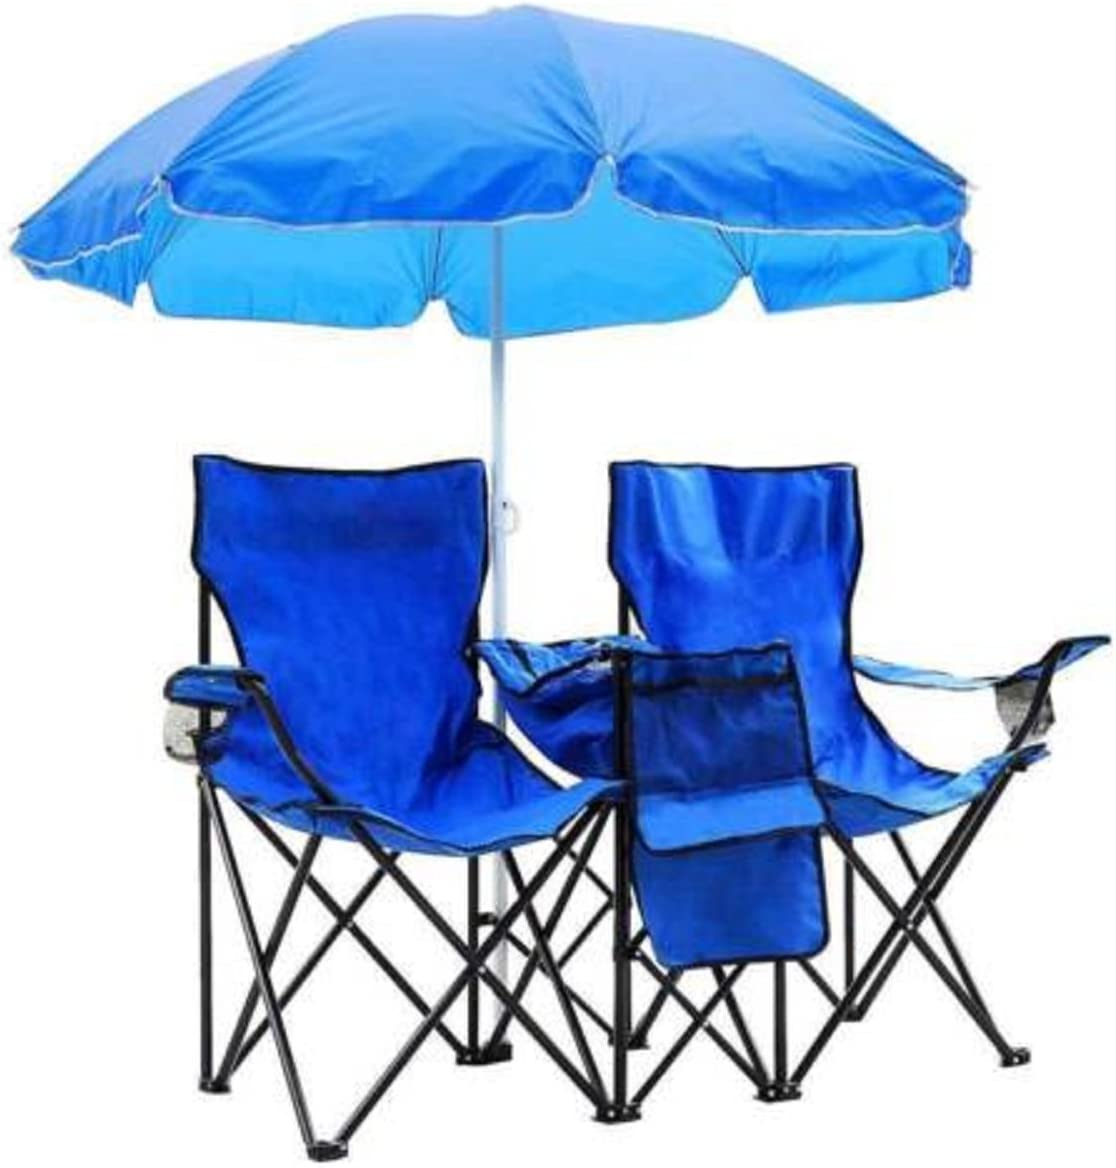 Portable Folding Picnic Double Recline Chair W Umbrella Table Cooler Beach Camping Chair Stadium Seat